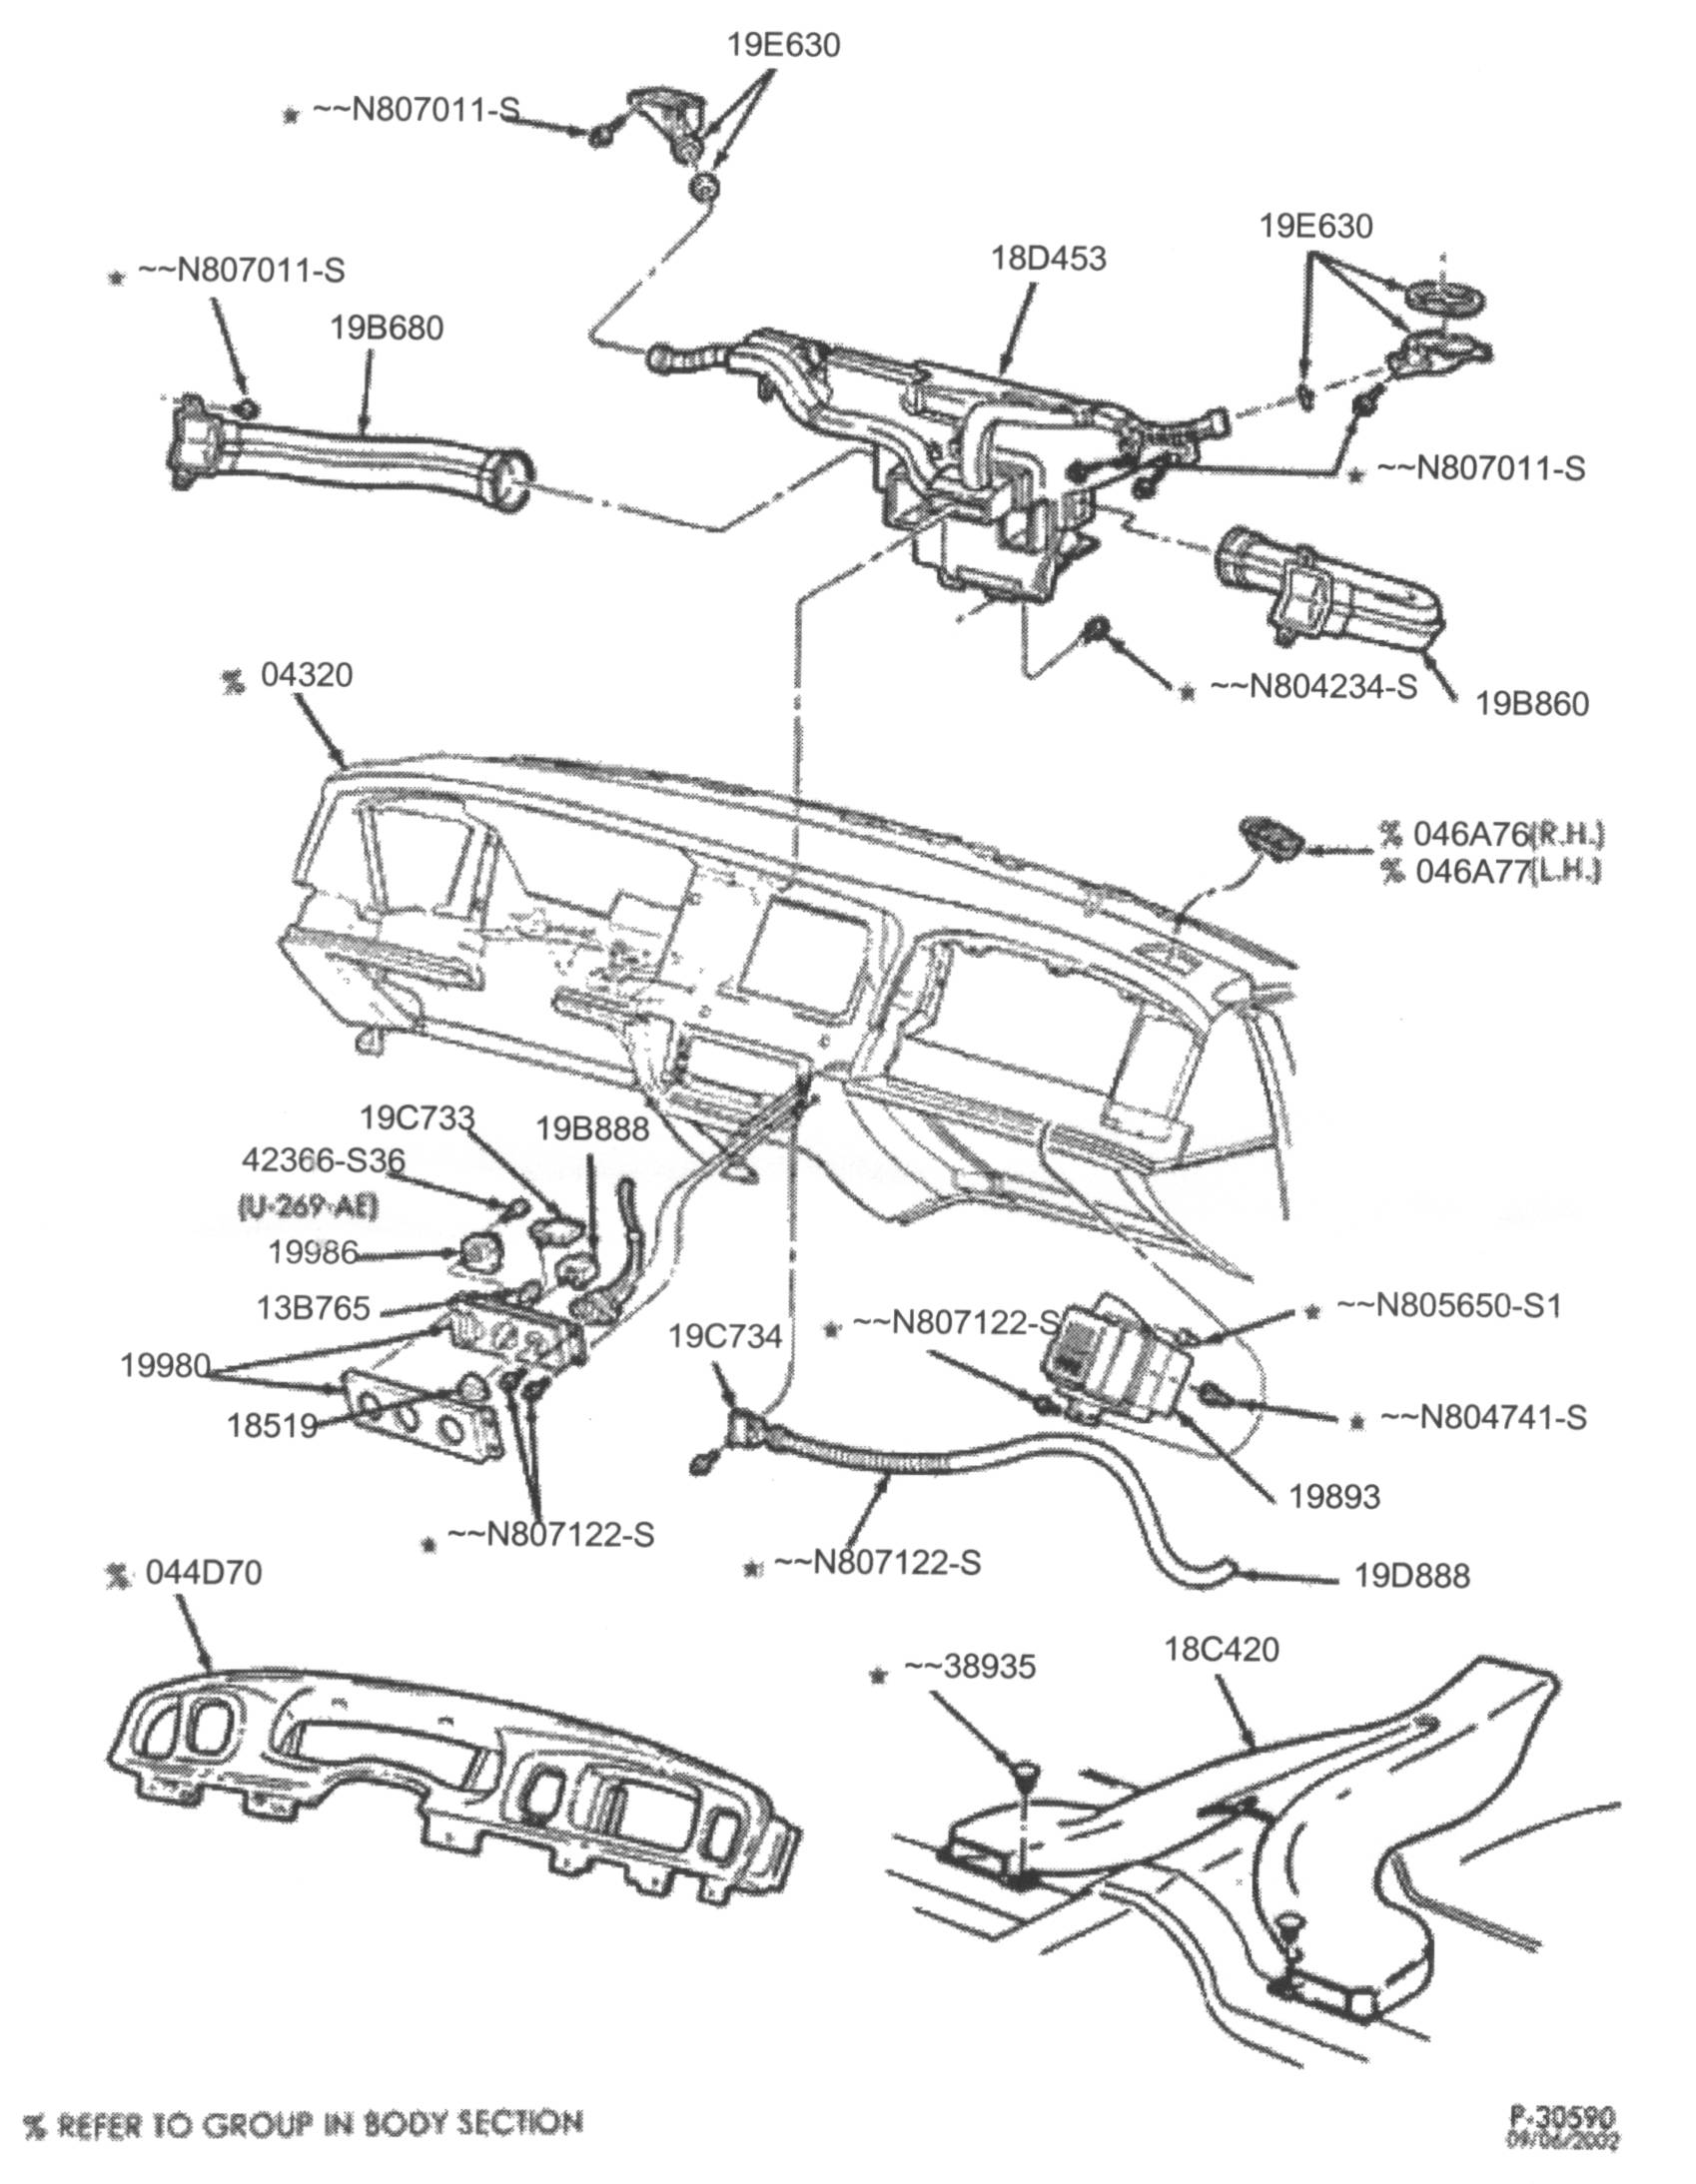 73 Mustang Wiring Diagram additionally Jogadoras De Volei additionally Anyone Have Chassis Diagrams 53608 additionally Audioupgrade besides 1996 Dodge Dakota Windshield Wiper Motor Wiring Diagram. on durango steering harness diagram